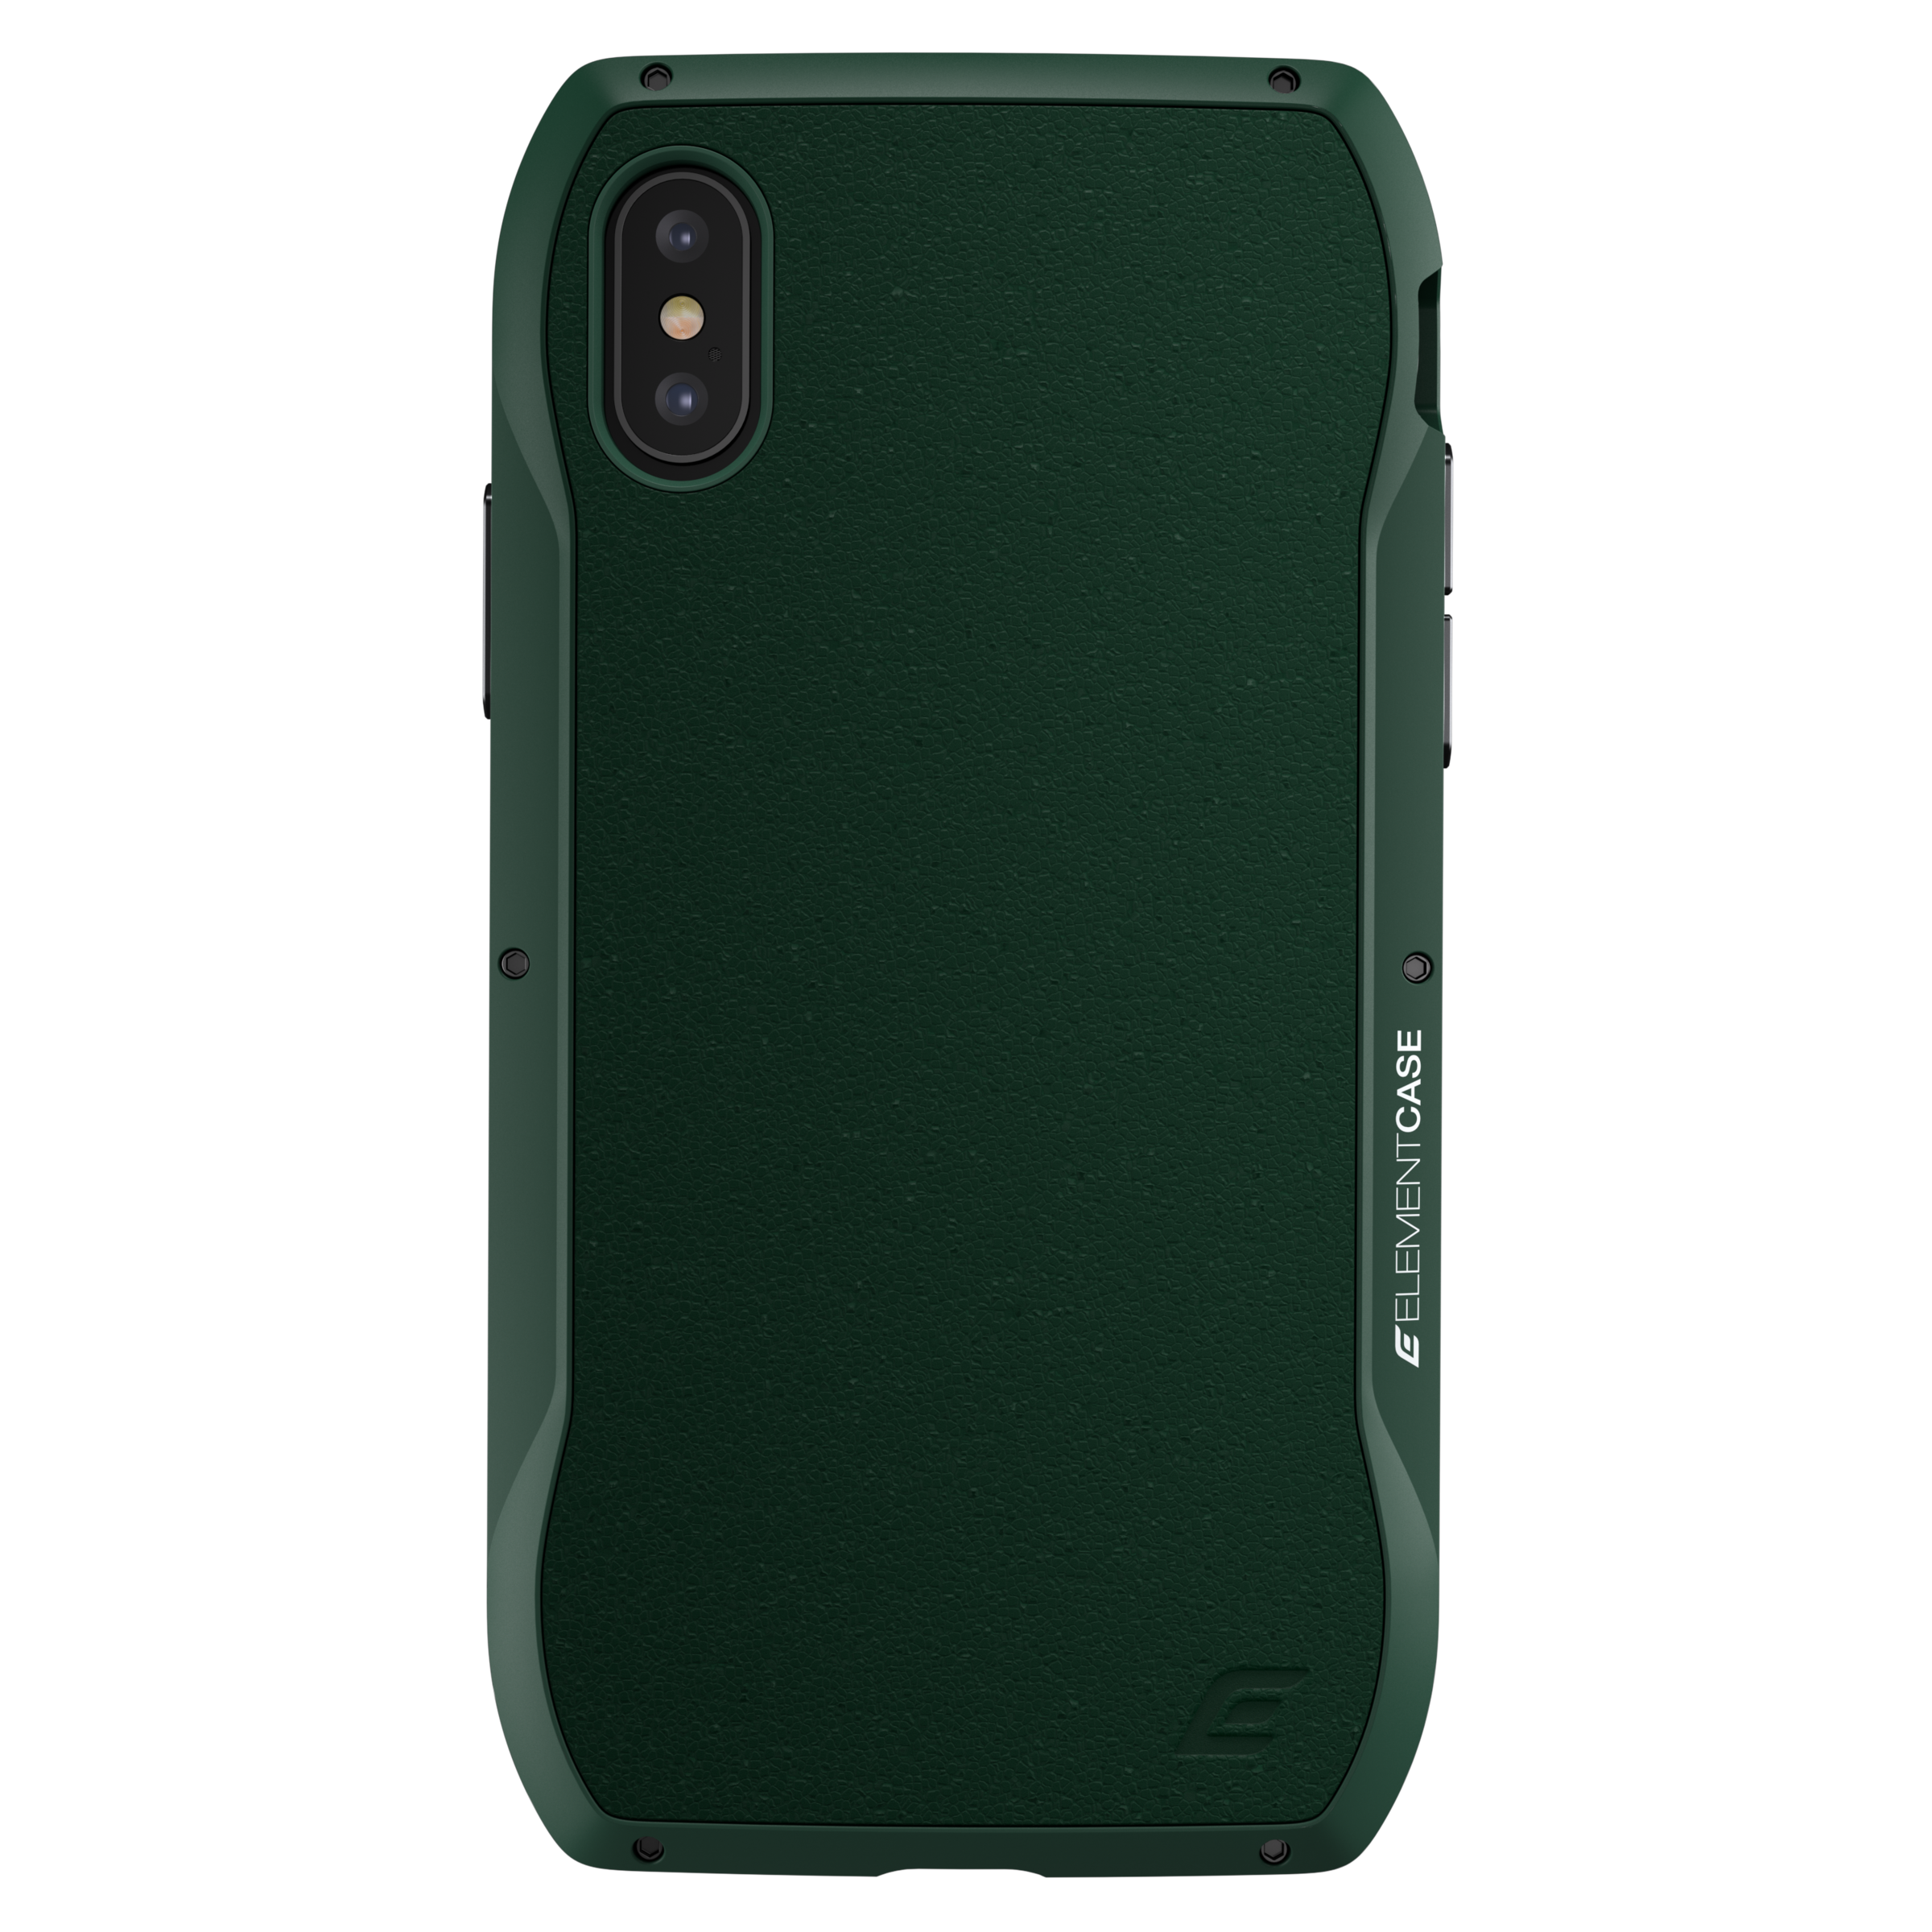 ENIGMA_IPXS-MAX_GREEN_Orth Back.png